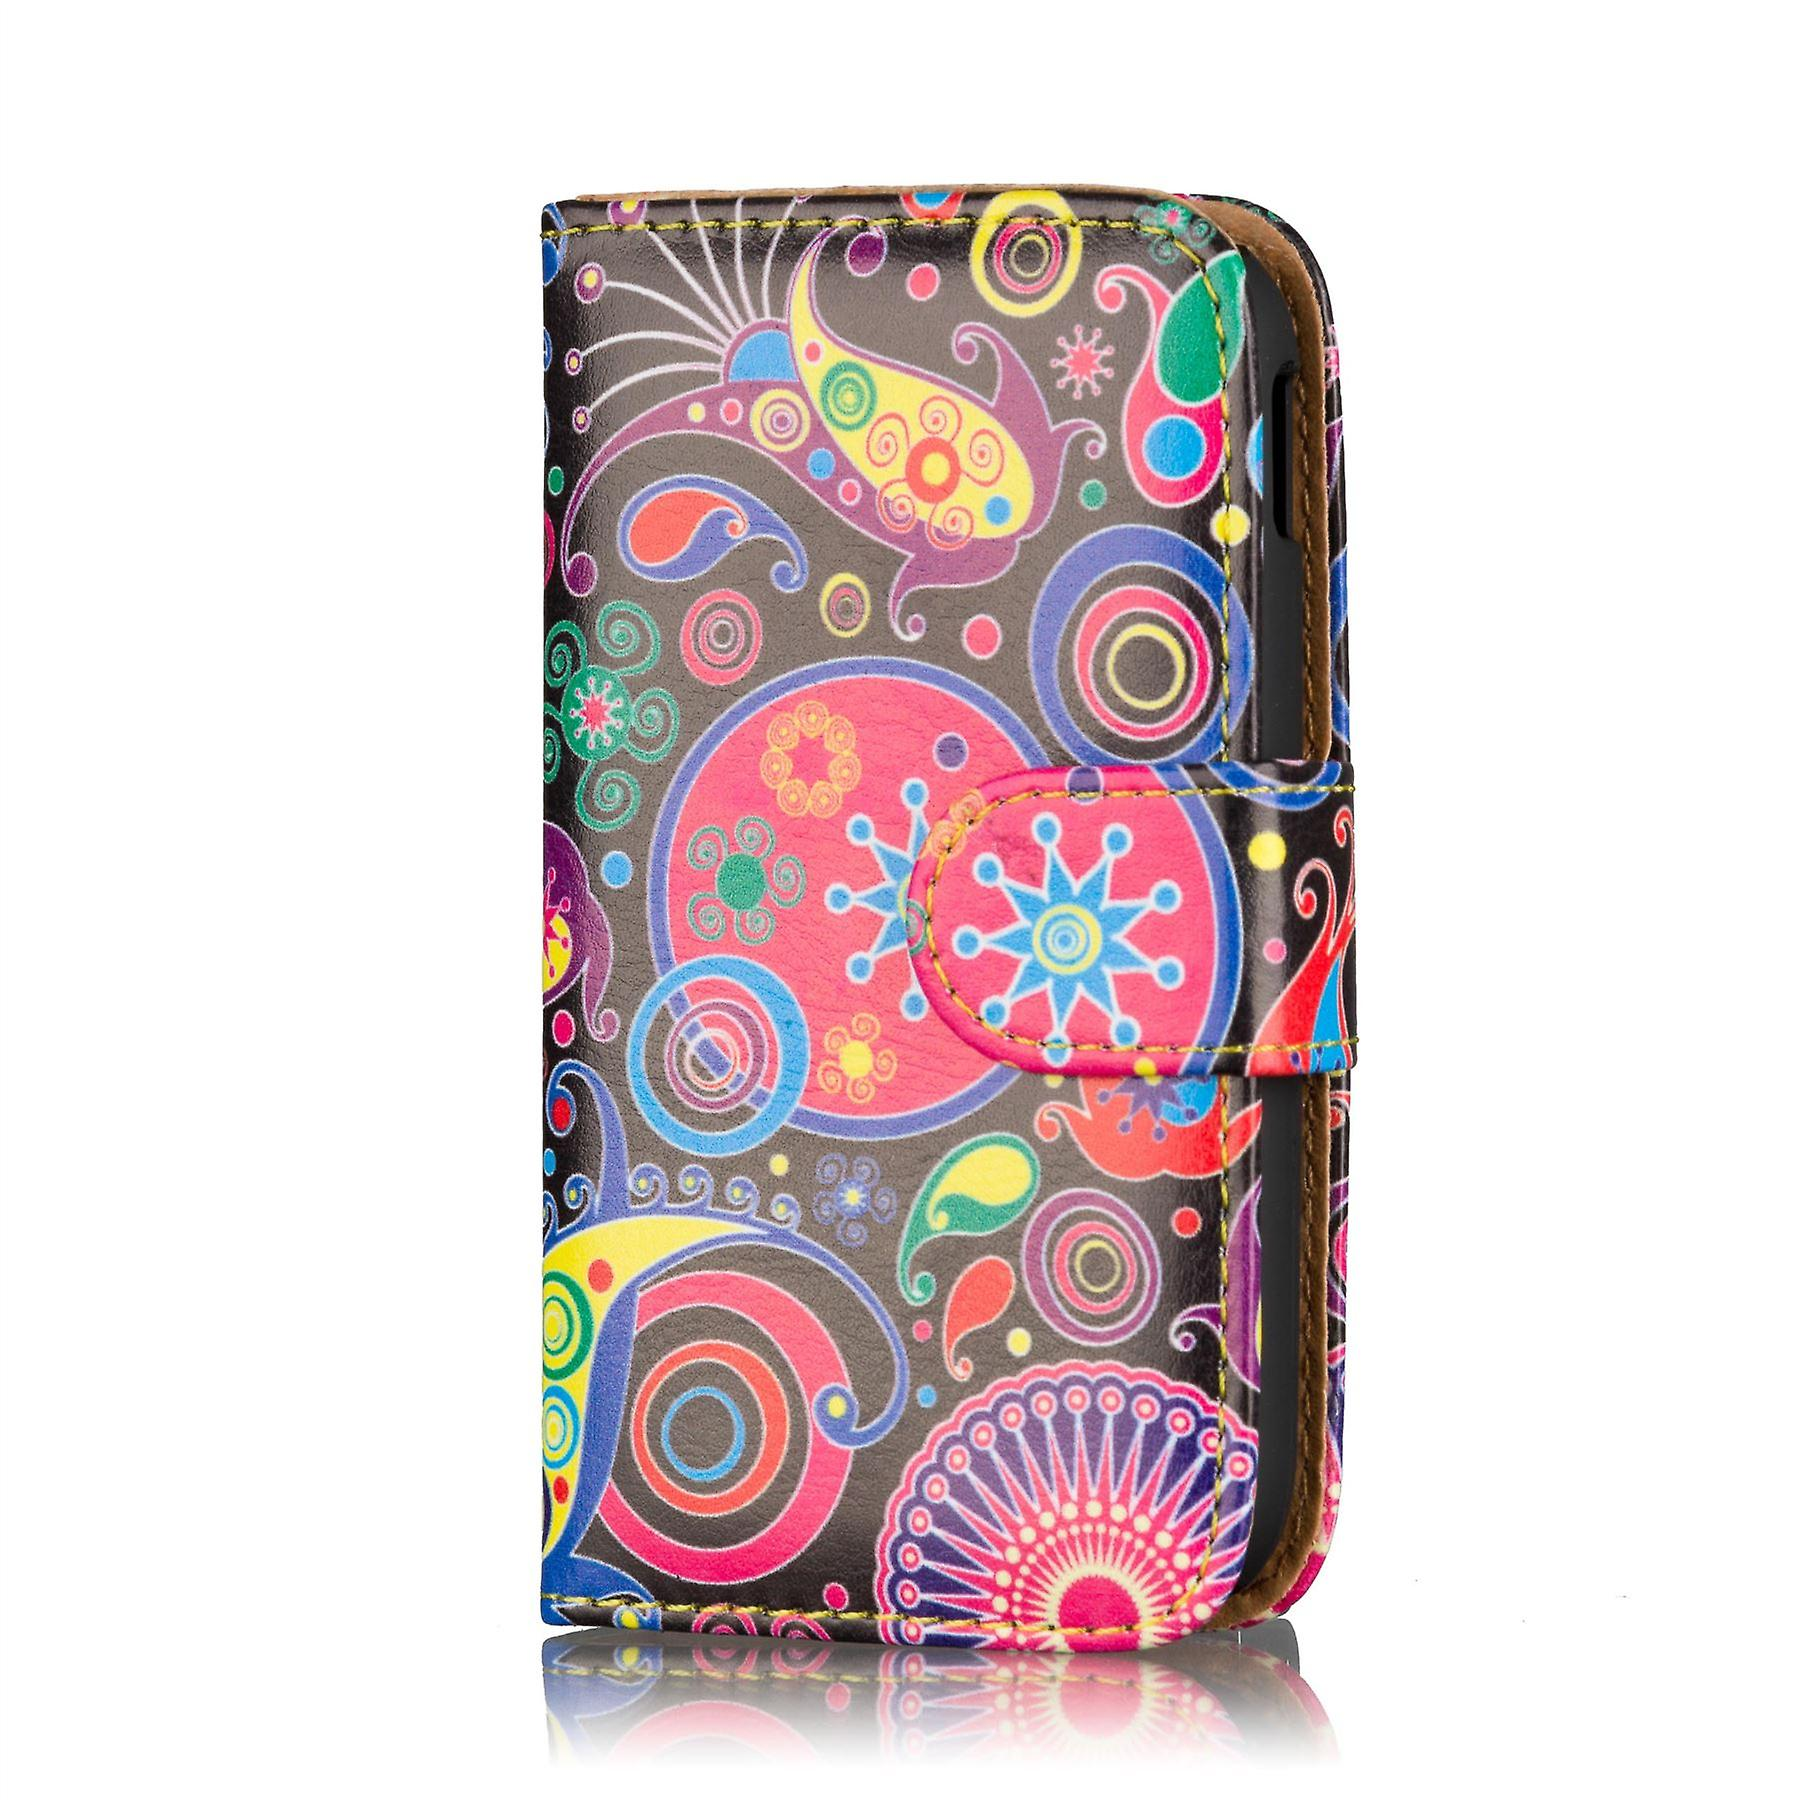 Design Book Leather case cover for Samsung Galaxy S2 i9100 - Jellyfish